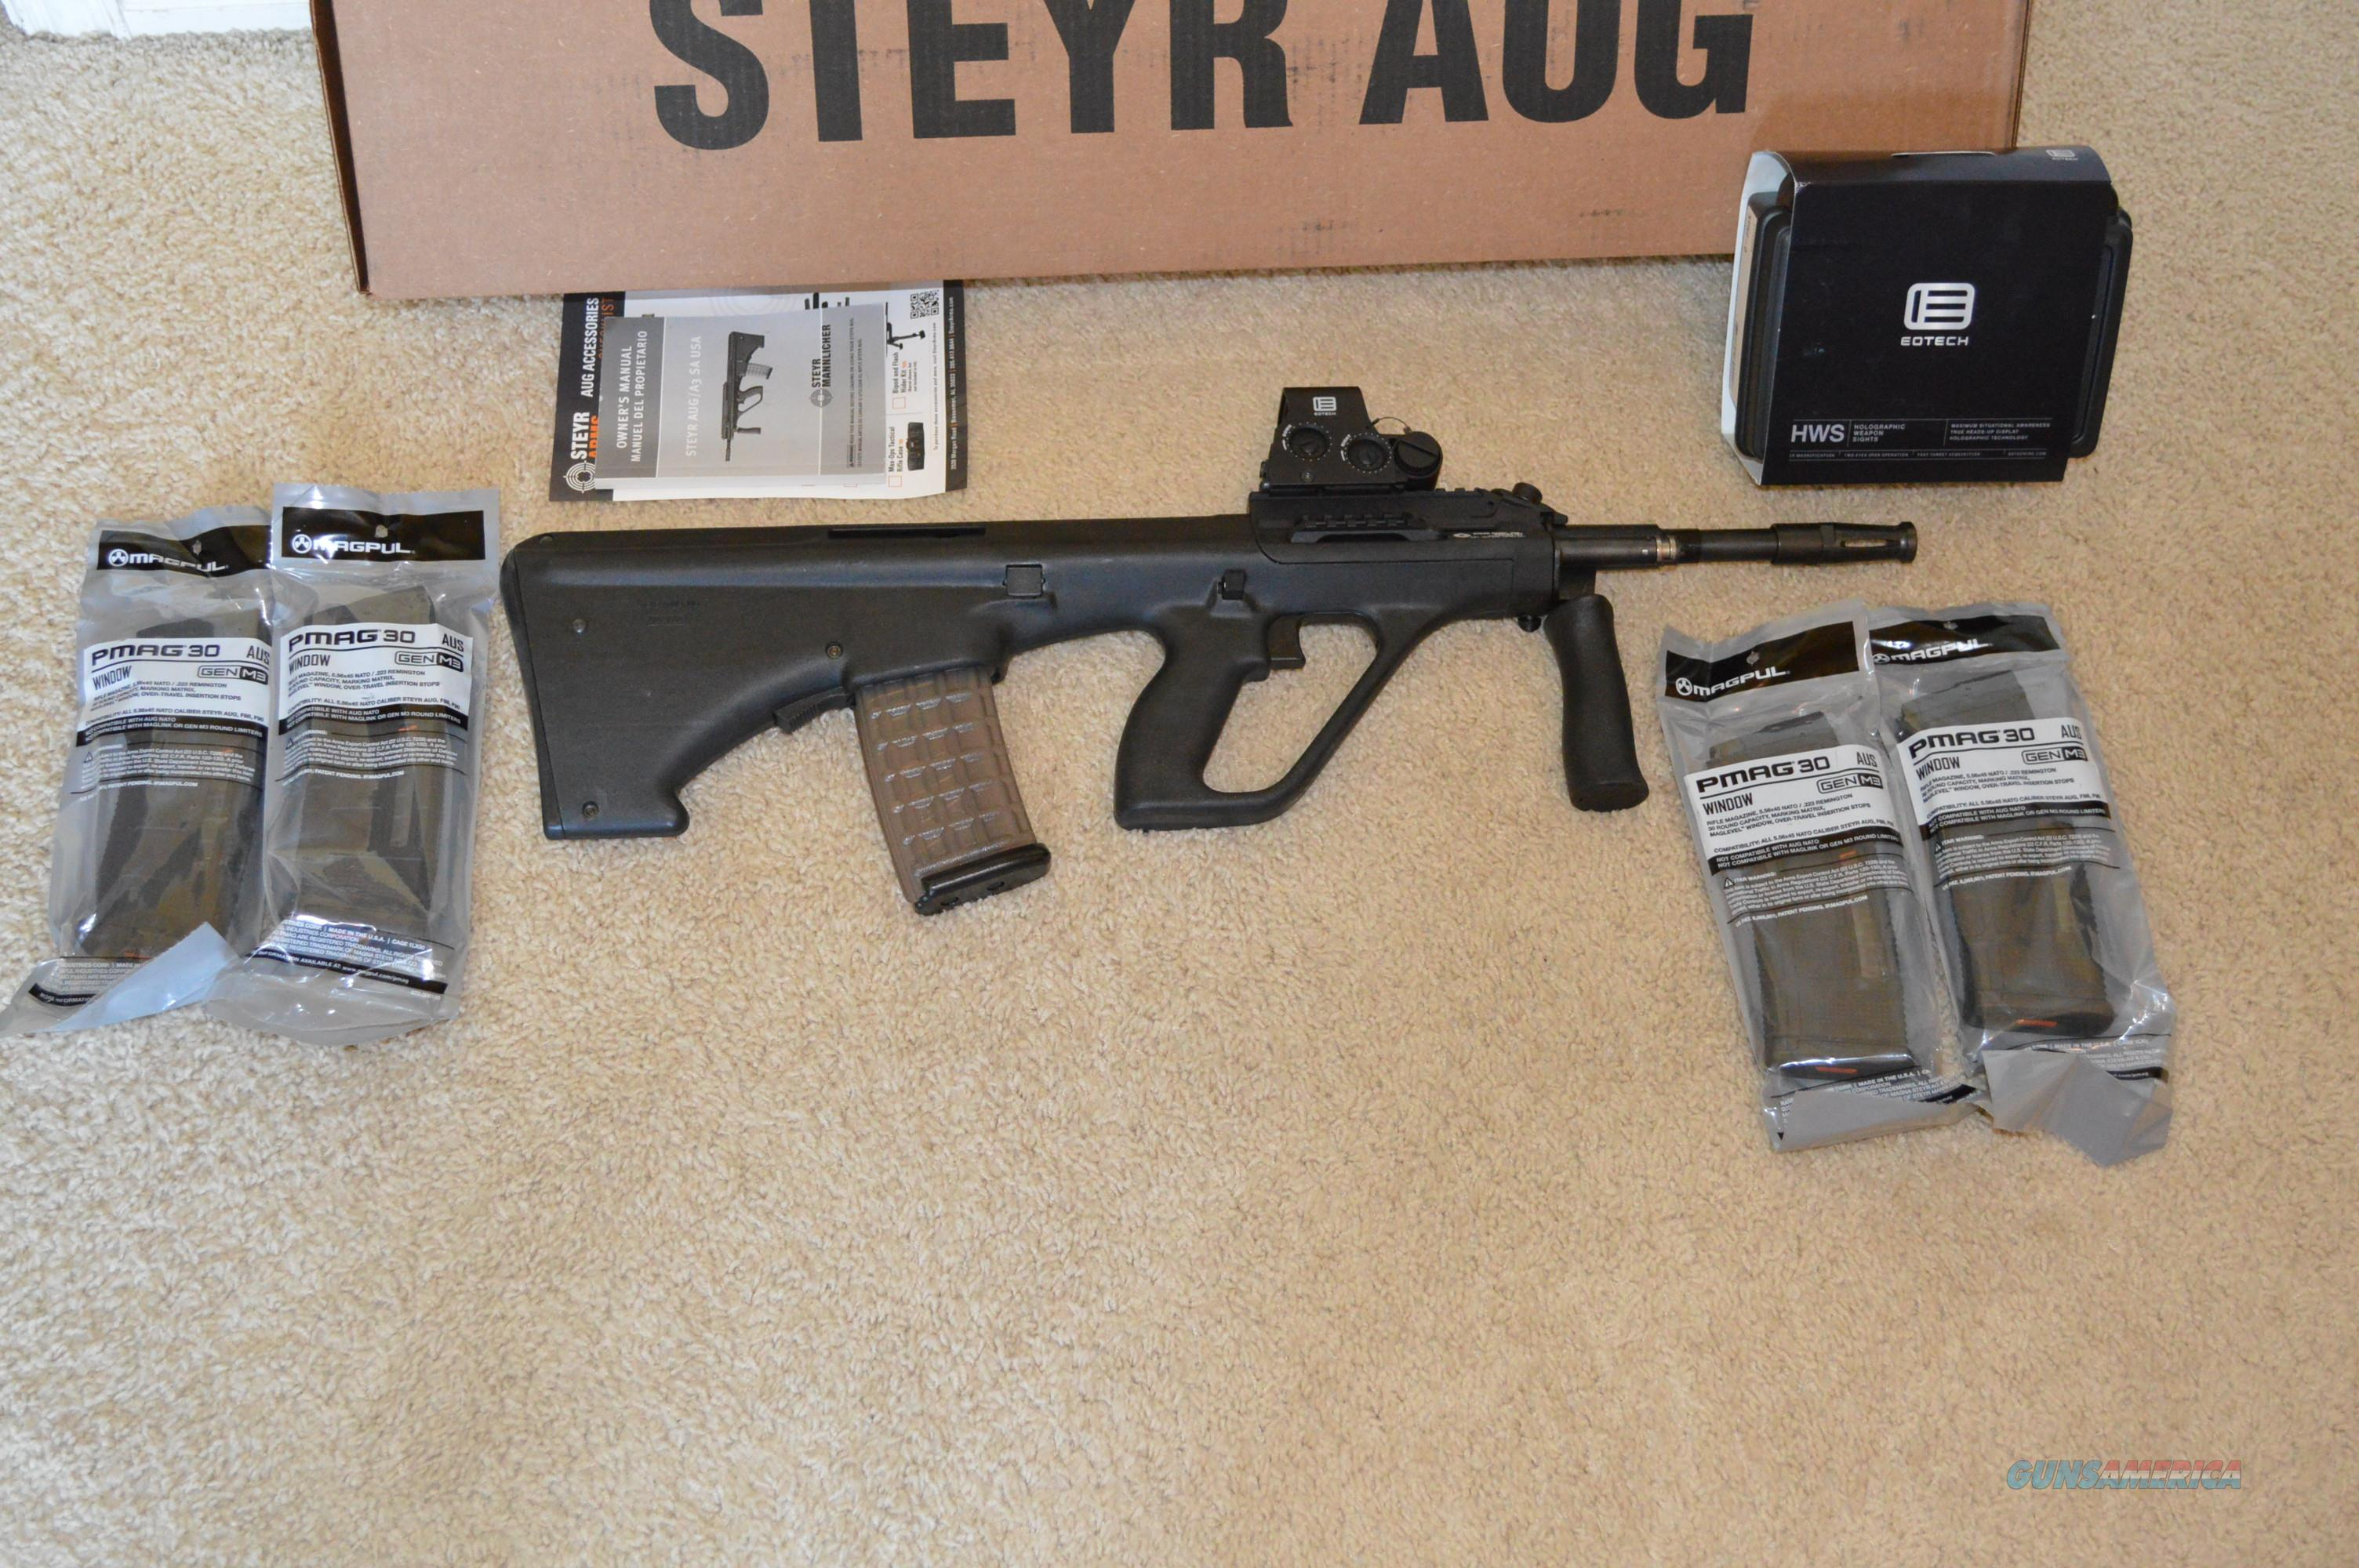 Clearance Sale! Steyr Aug Package EoTech Extra Mags  Guns > Rifles > Steyr Rifles